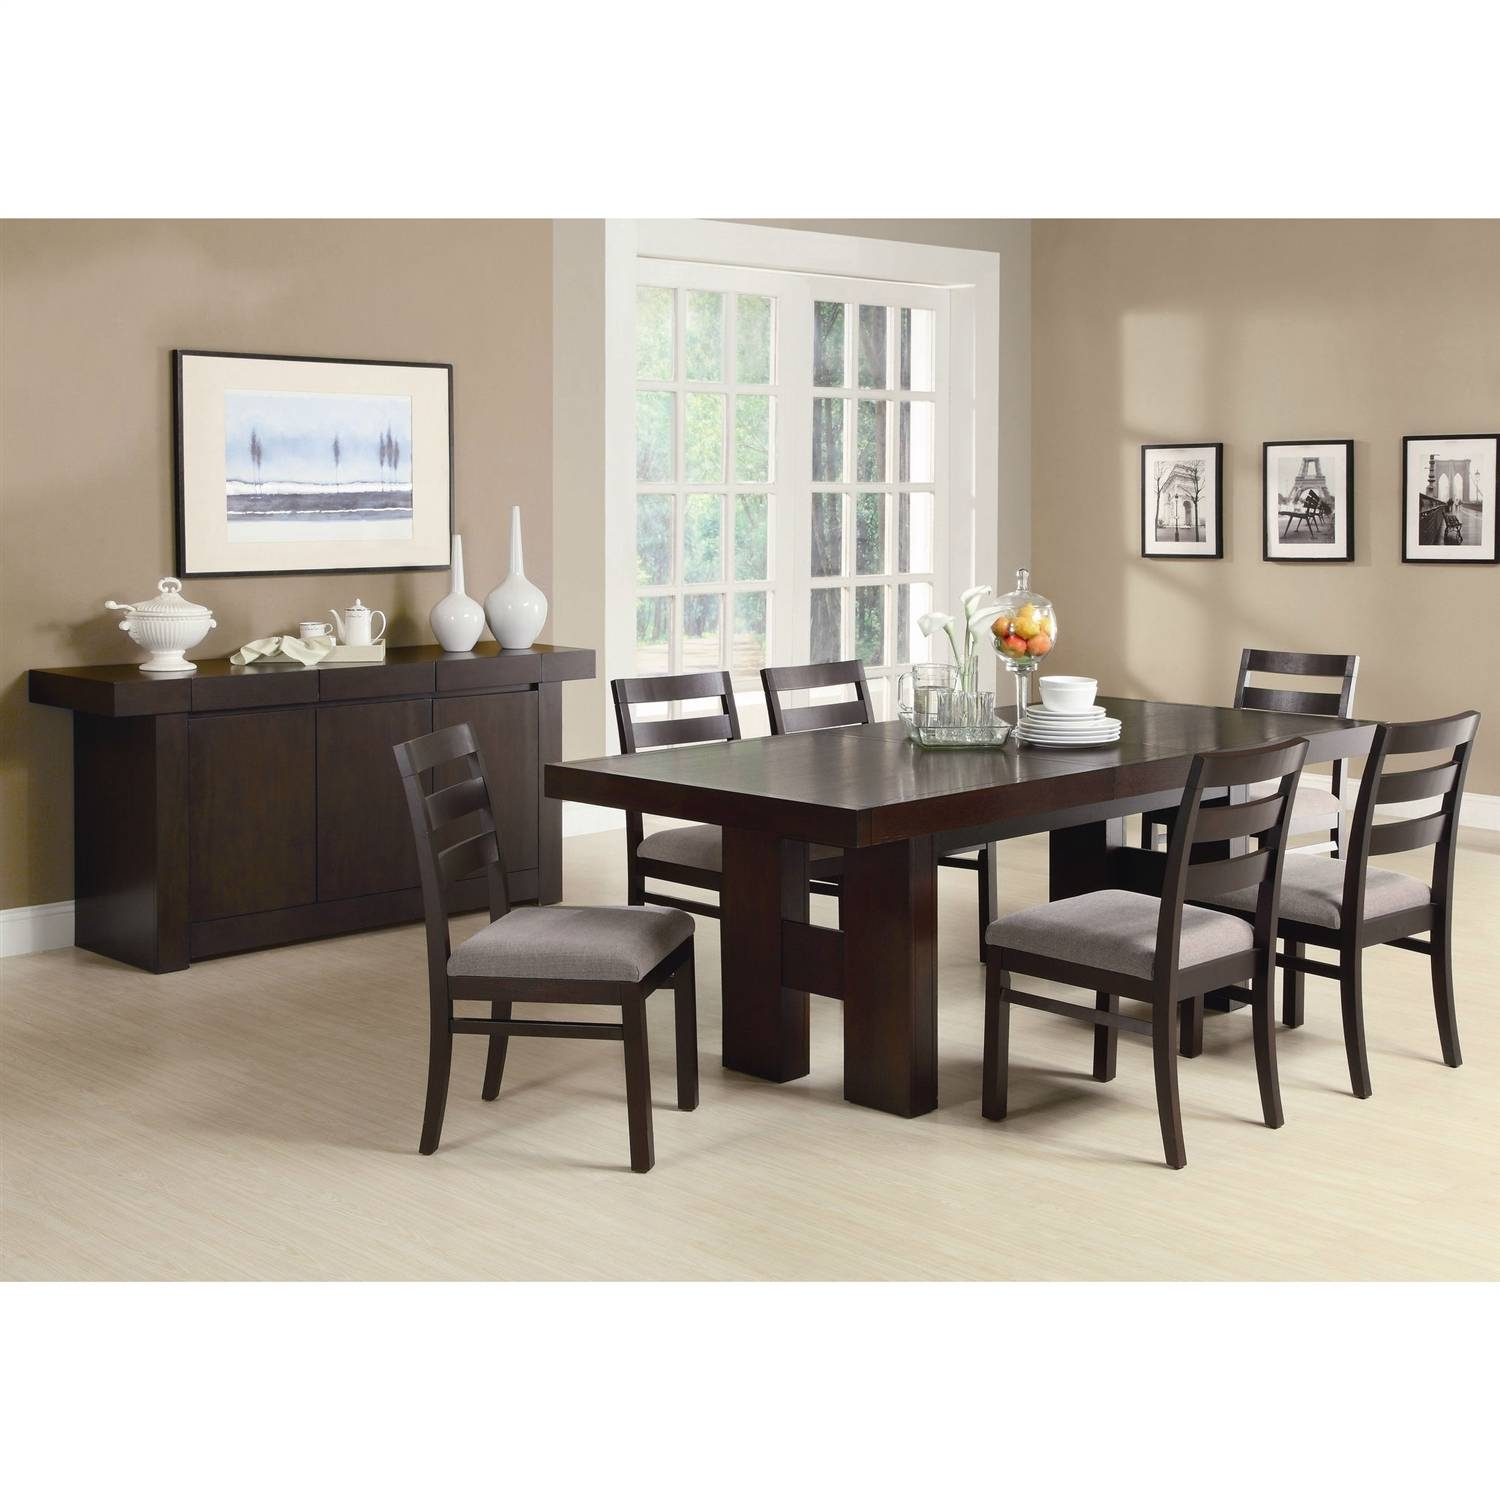 Smartly Cappuccino Also Retail Room Sideboard Server Table Cabinet with Dining Room With Sideboards (Image 14 of 15)